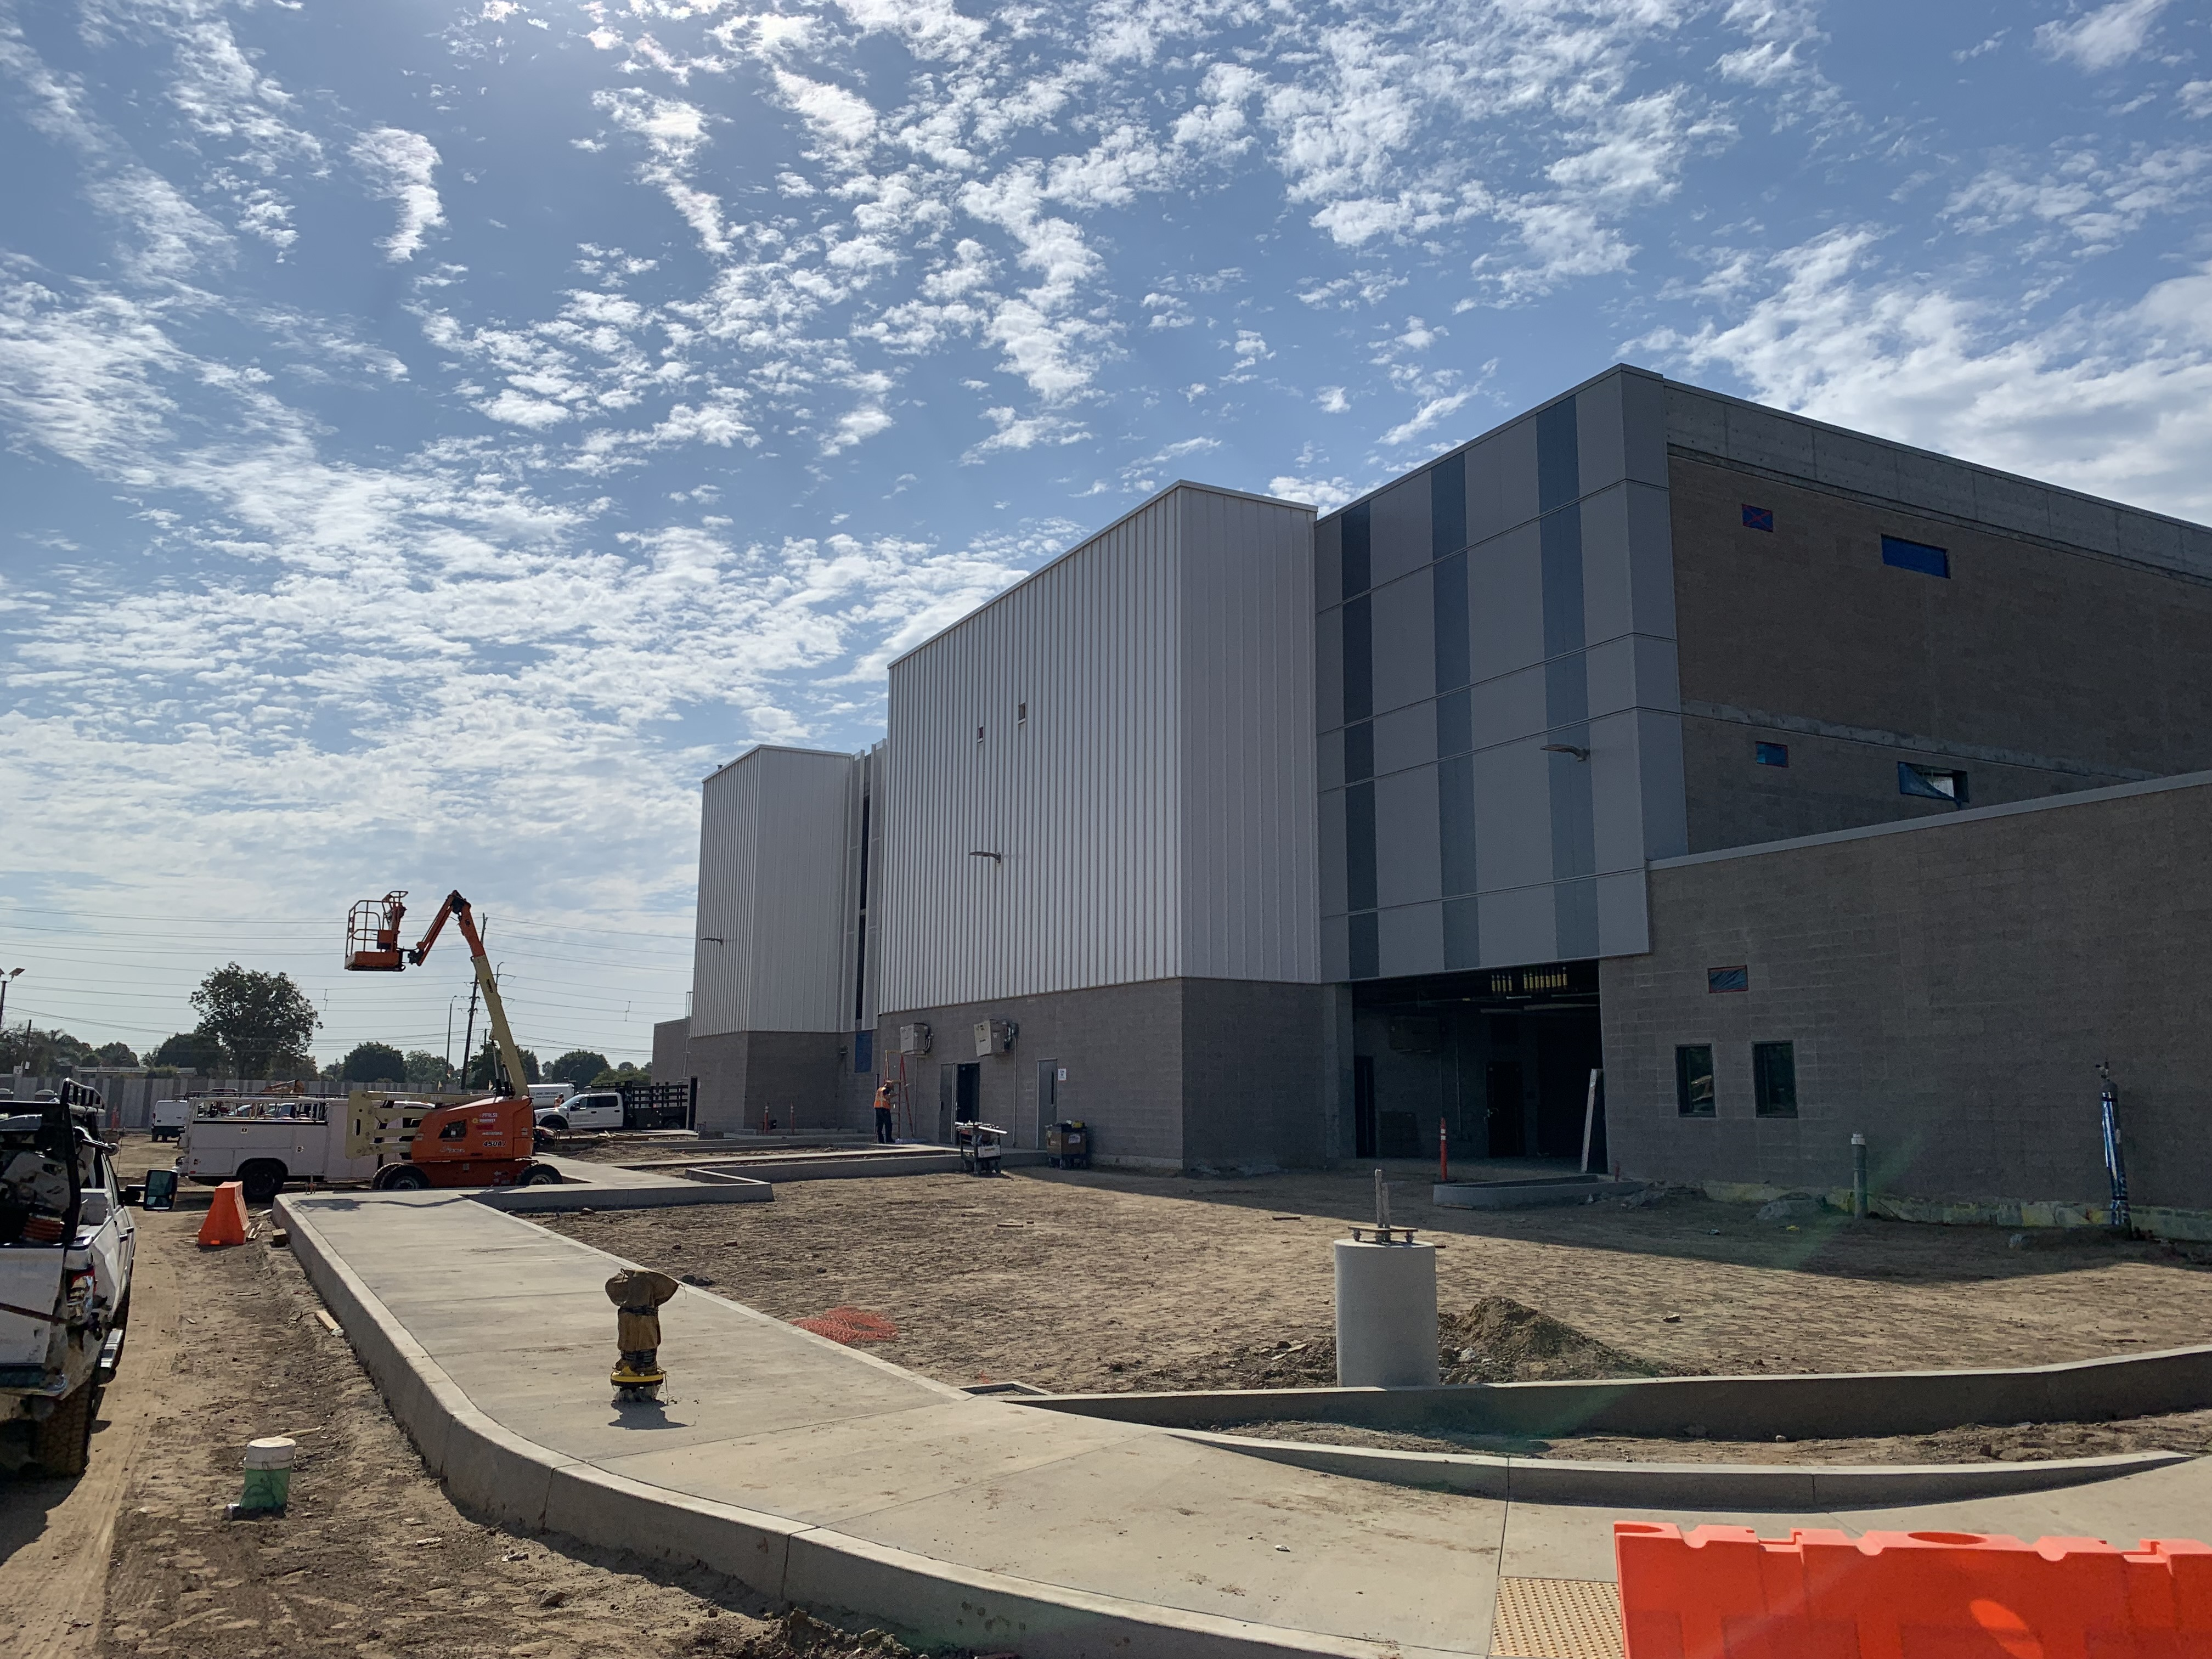 An exterior view of the Quick Turn Around building at the Consolidated Rent-A-Car facility.